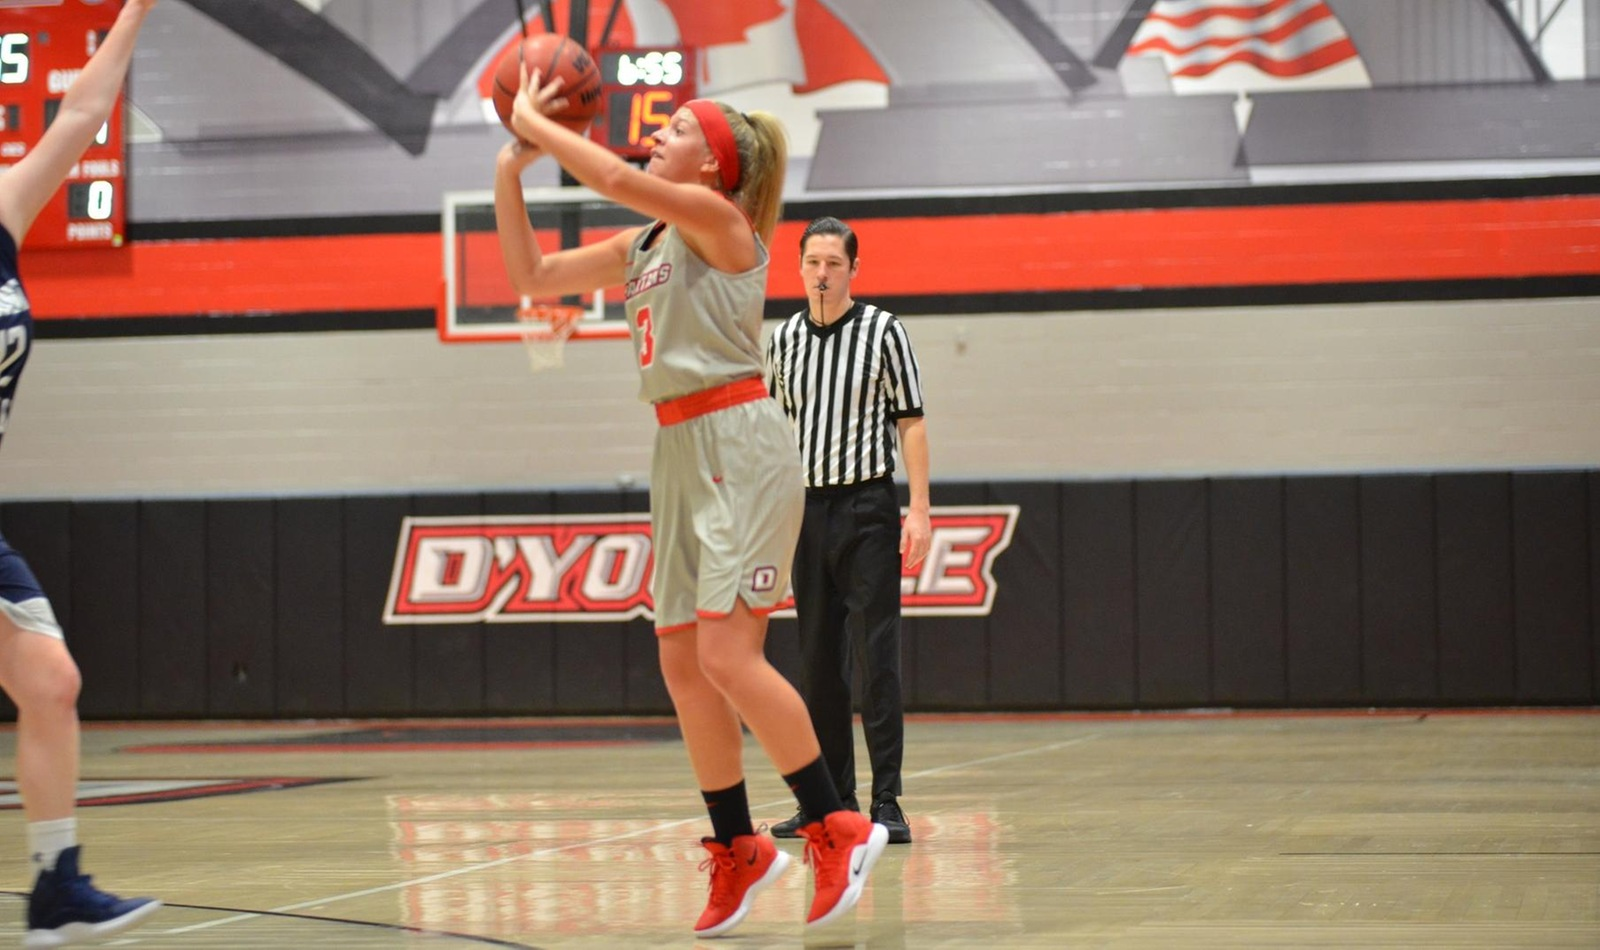 Altoona Defeats D'Youville in Women's Basketball